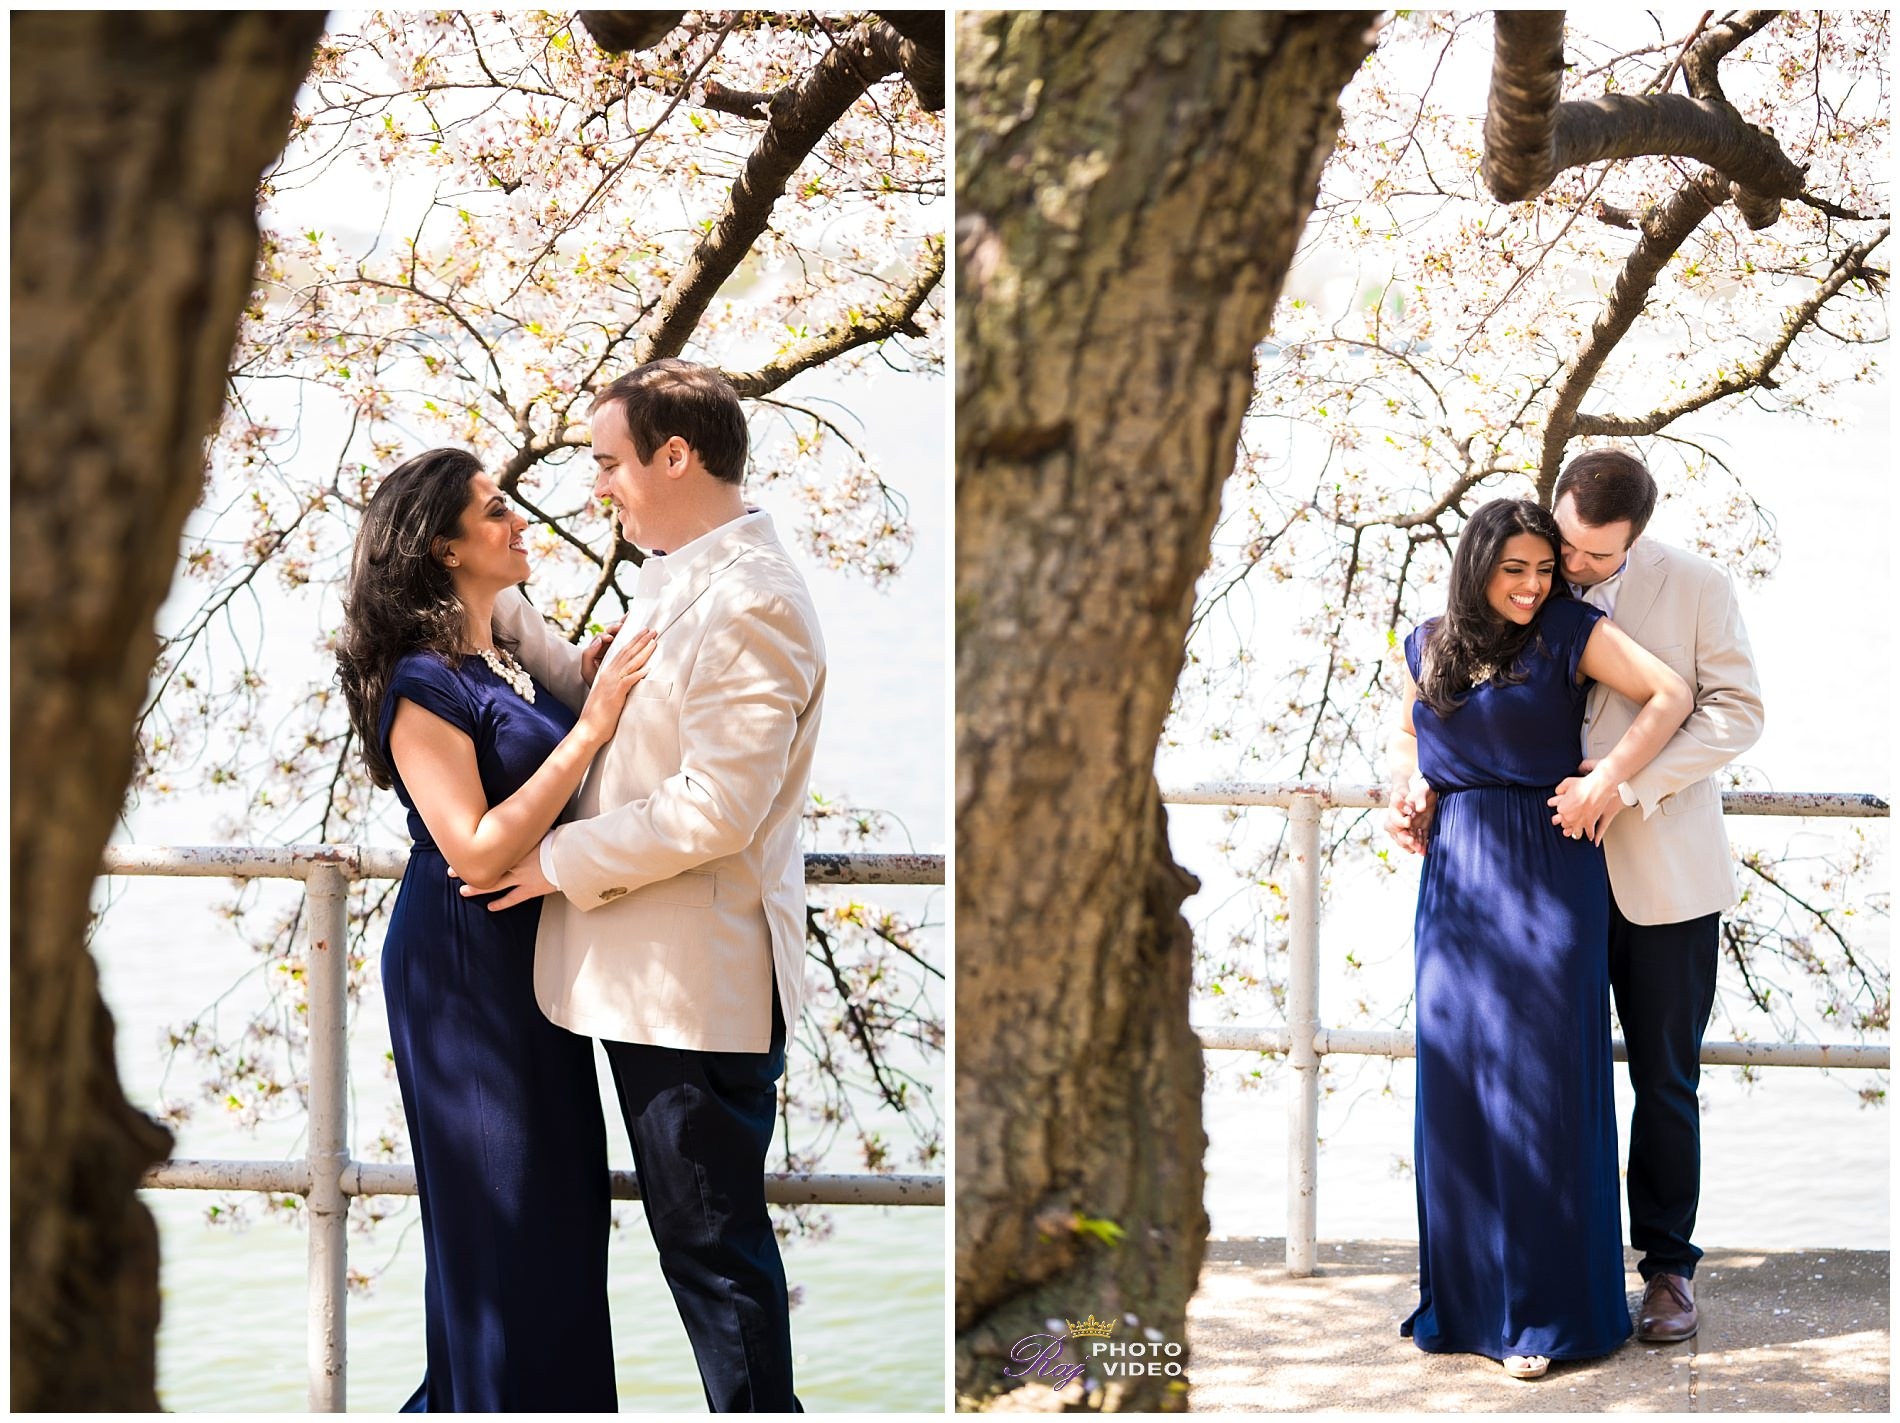 National-Cherry-Blossom-Festival-Washington-DC-Engagement-Shoot-Aditi-Peter-7.jpg